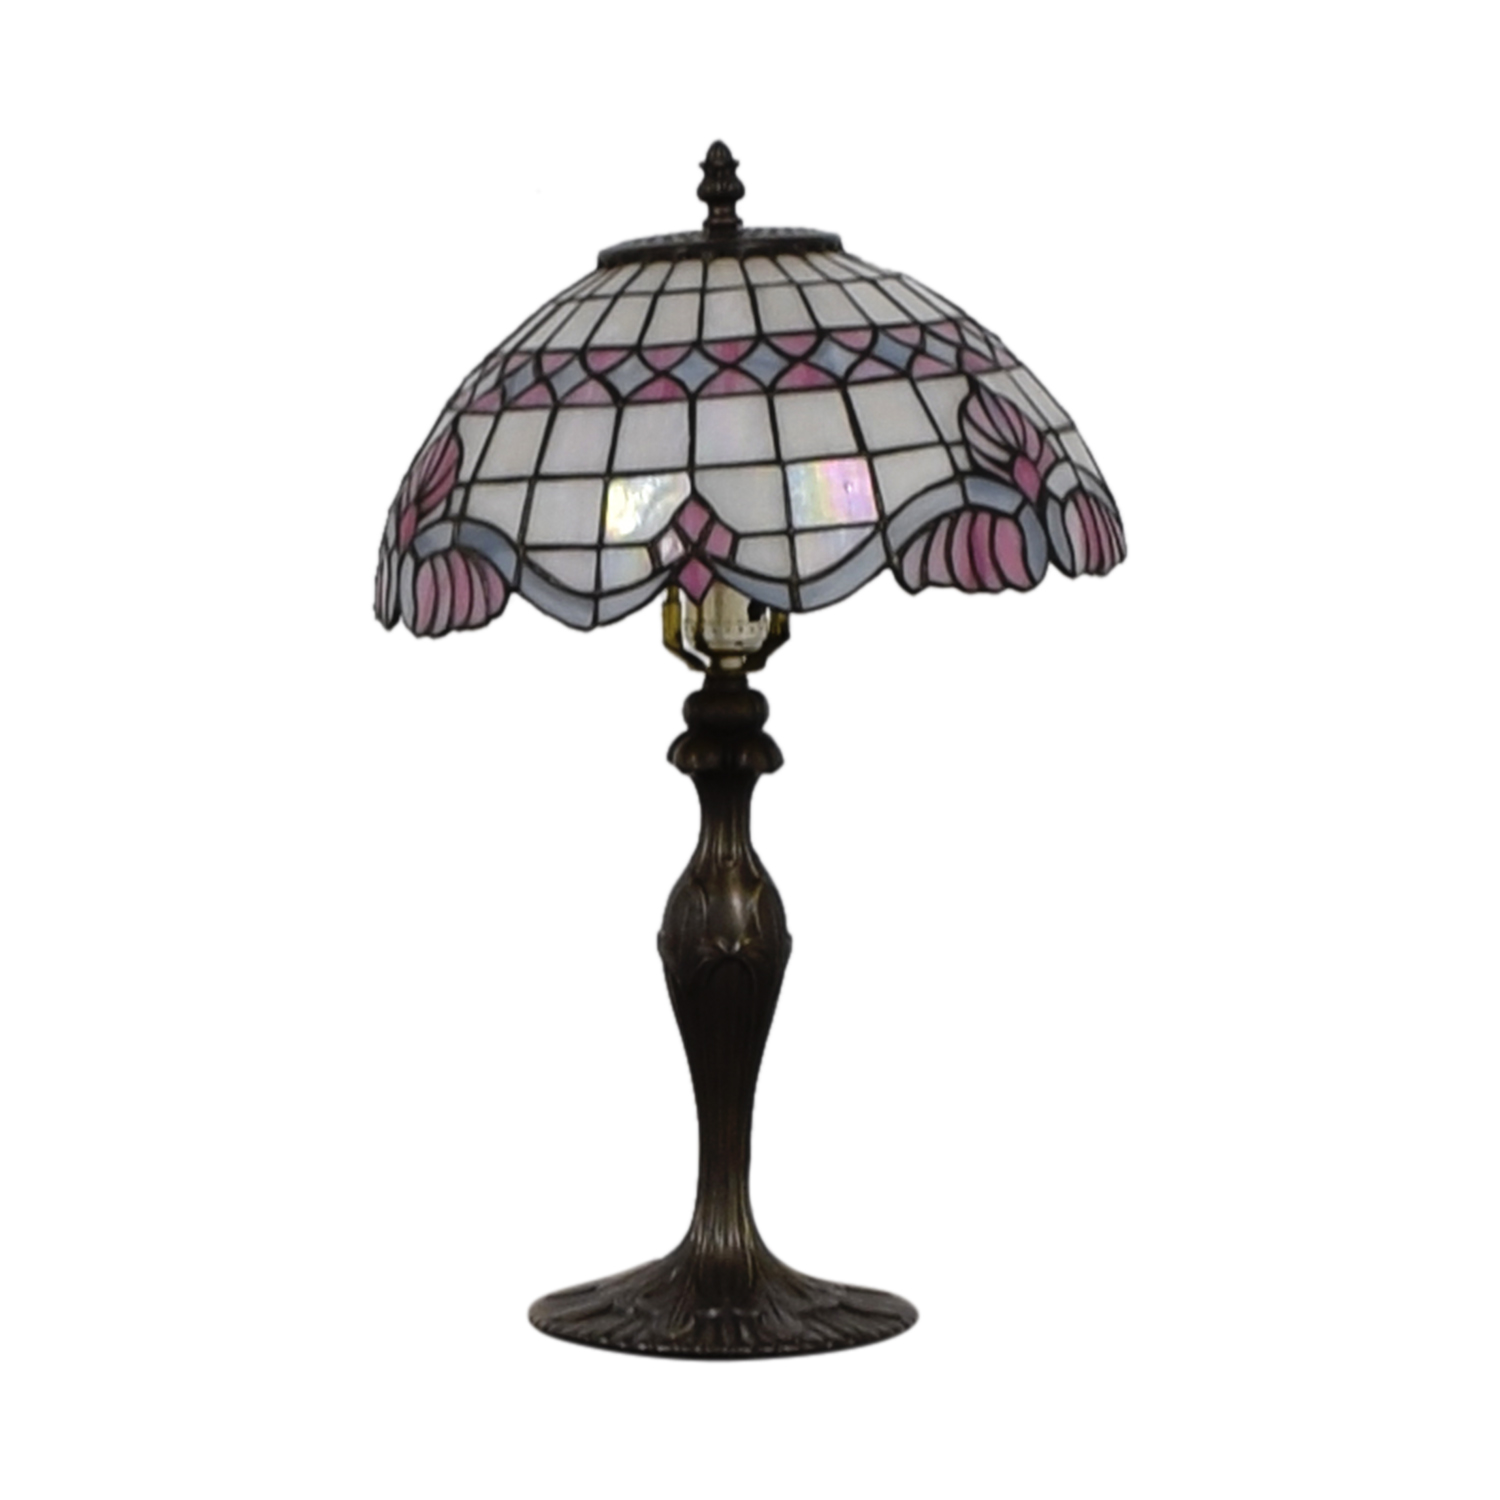 Tiffany Inspired Stained Glass Table Lamp price